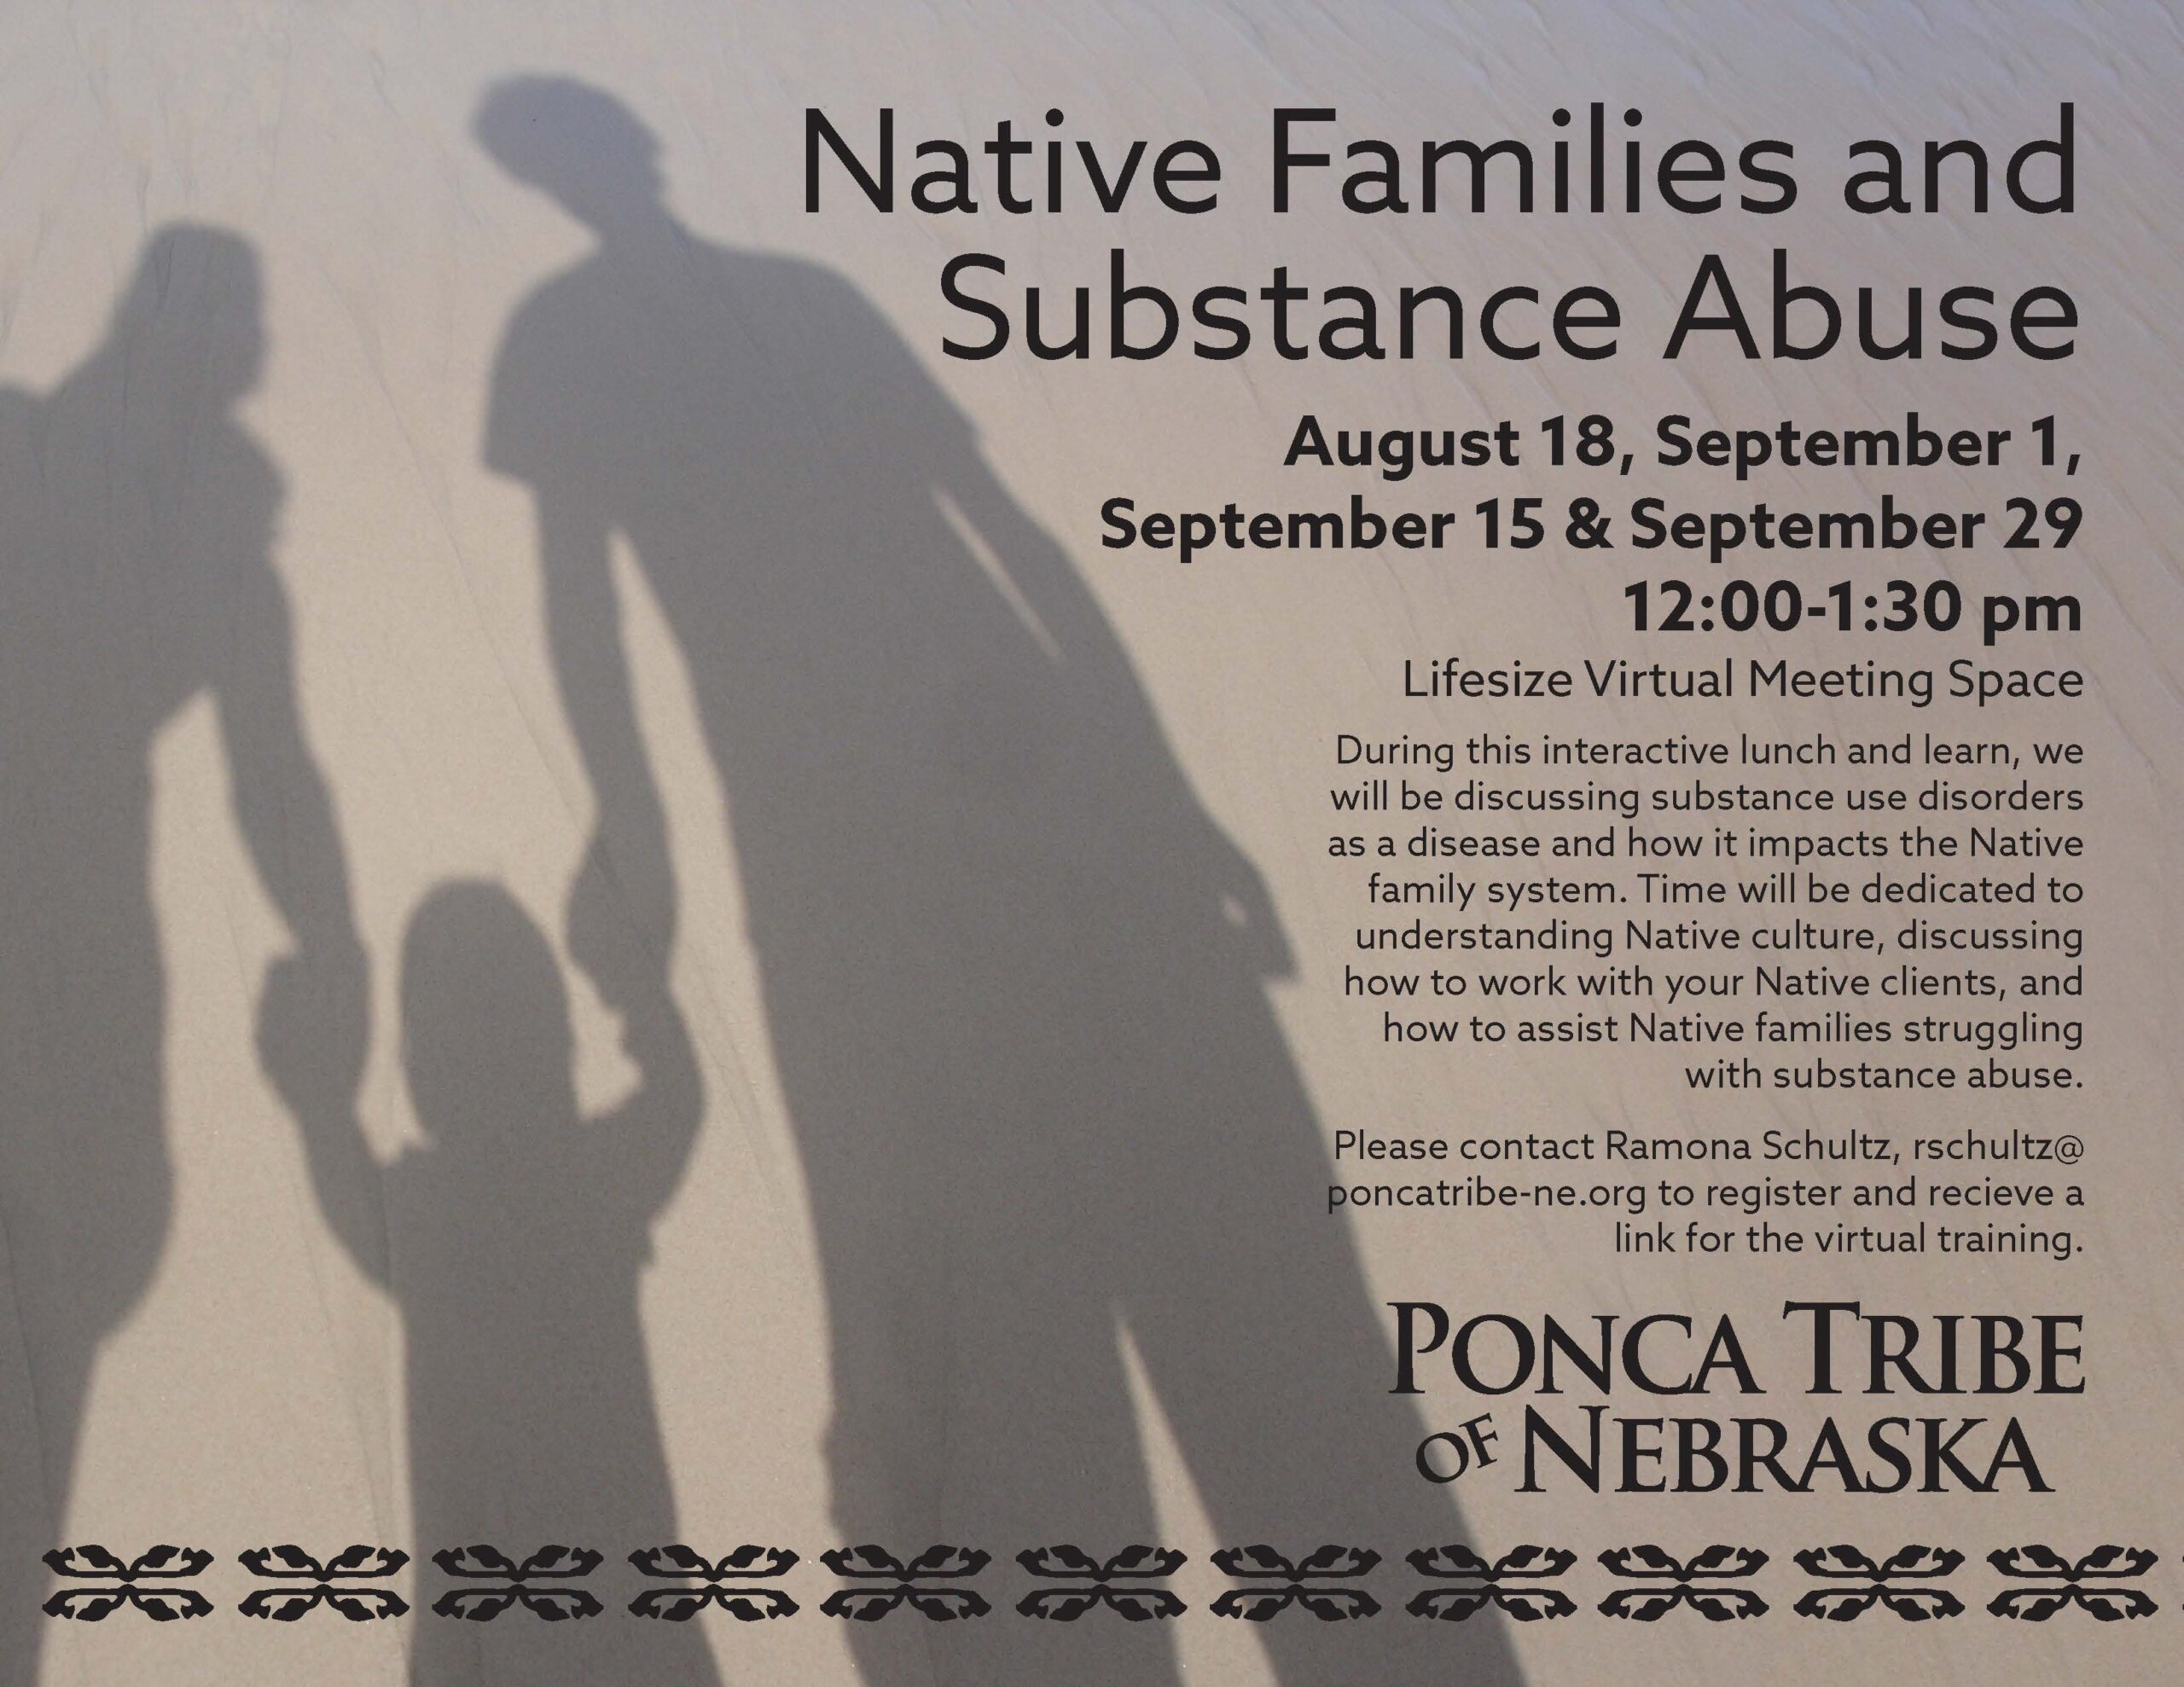 Native Families and Substance Abuse